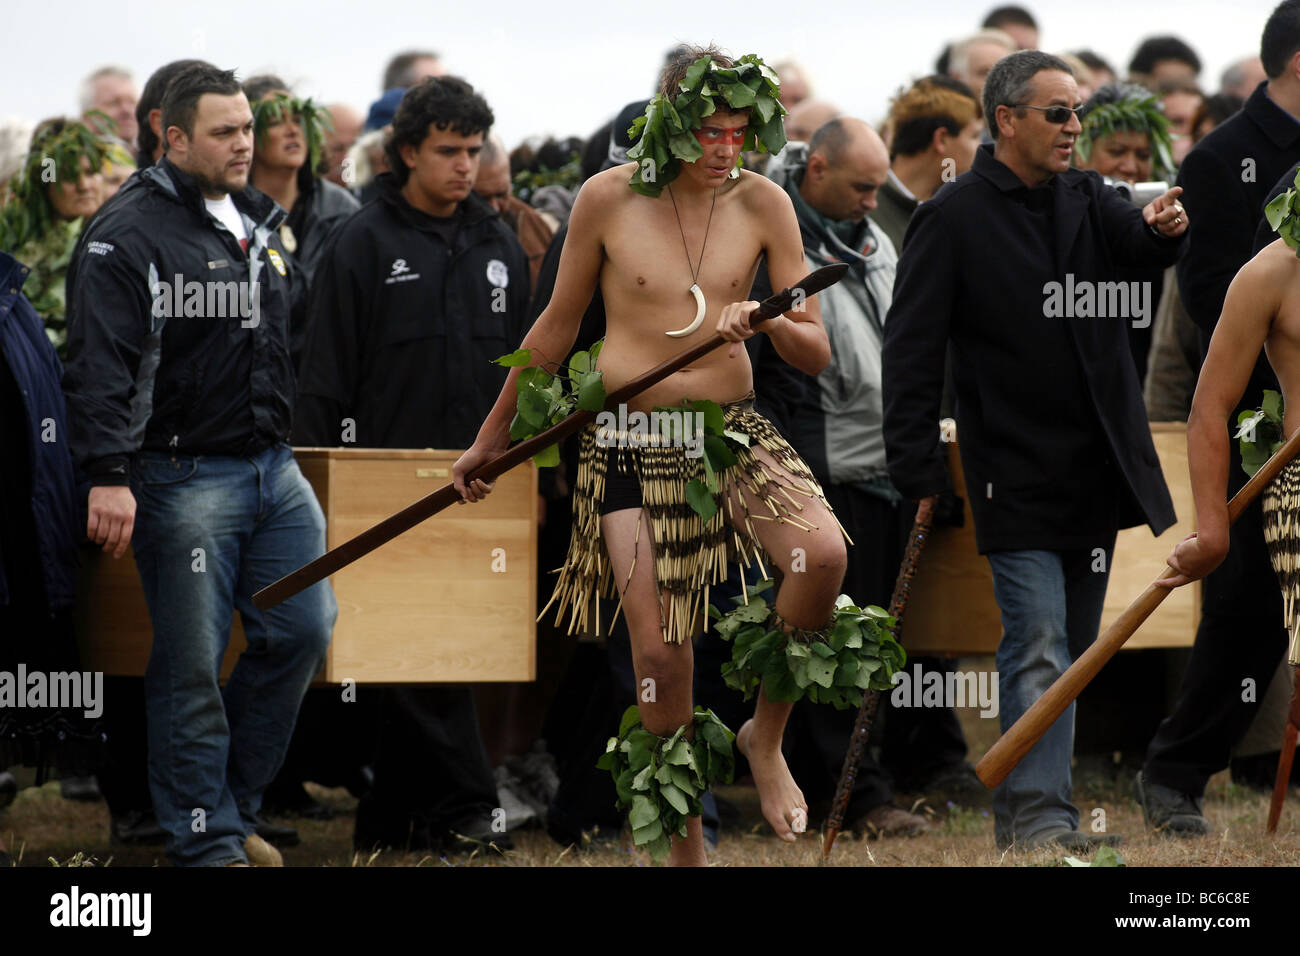 Maori bones believed to be of the original settlers to New Zealand, are returned and reburied at Wairau Bar, Marlborough - Stock Image